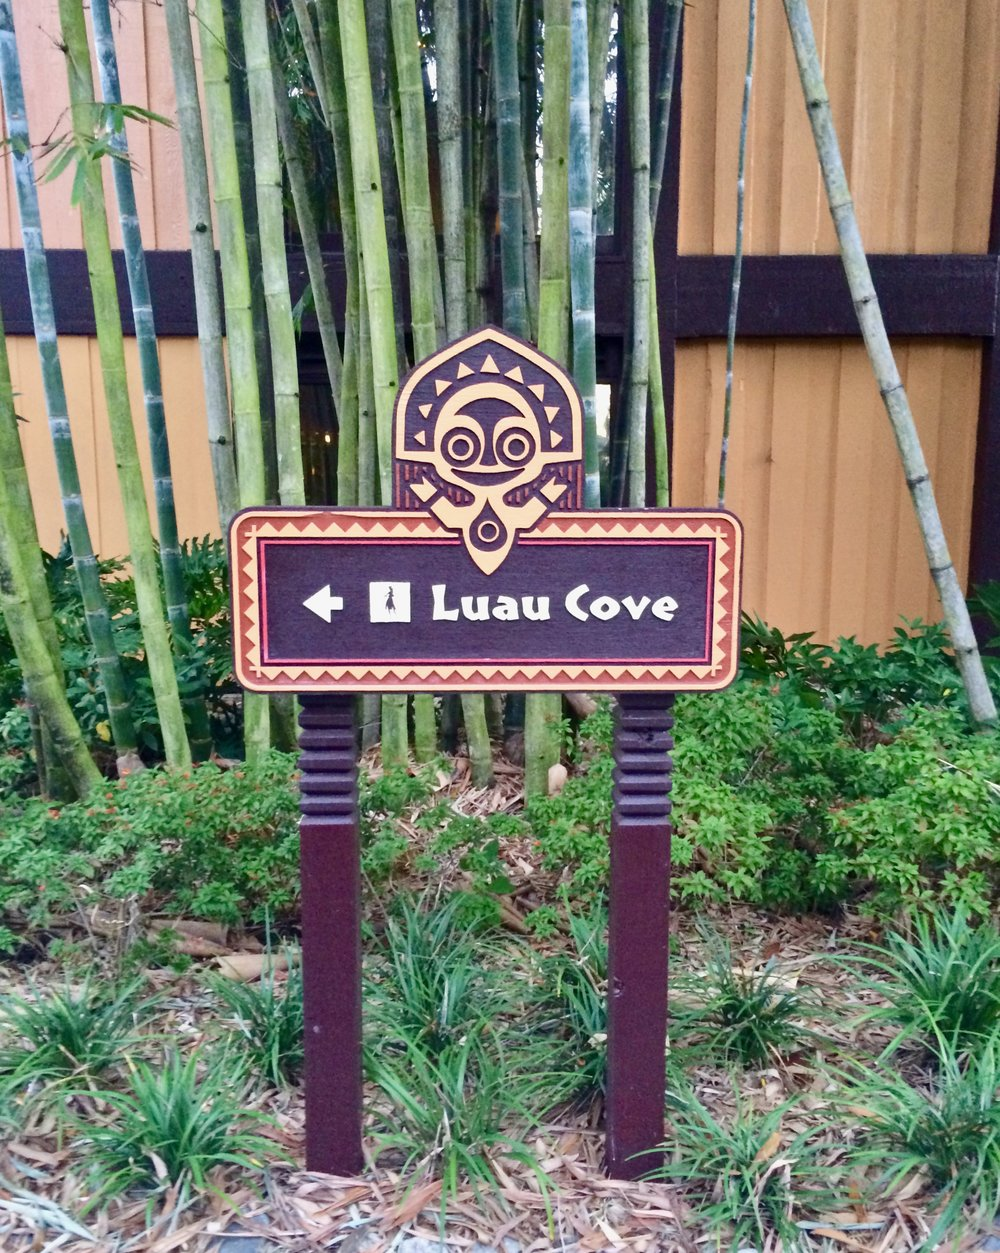 luau-cove-sign-polynesian.jpg